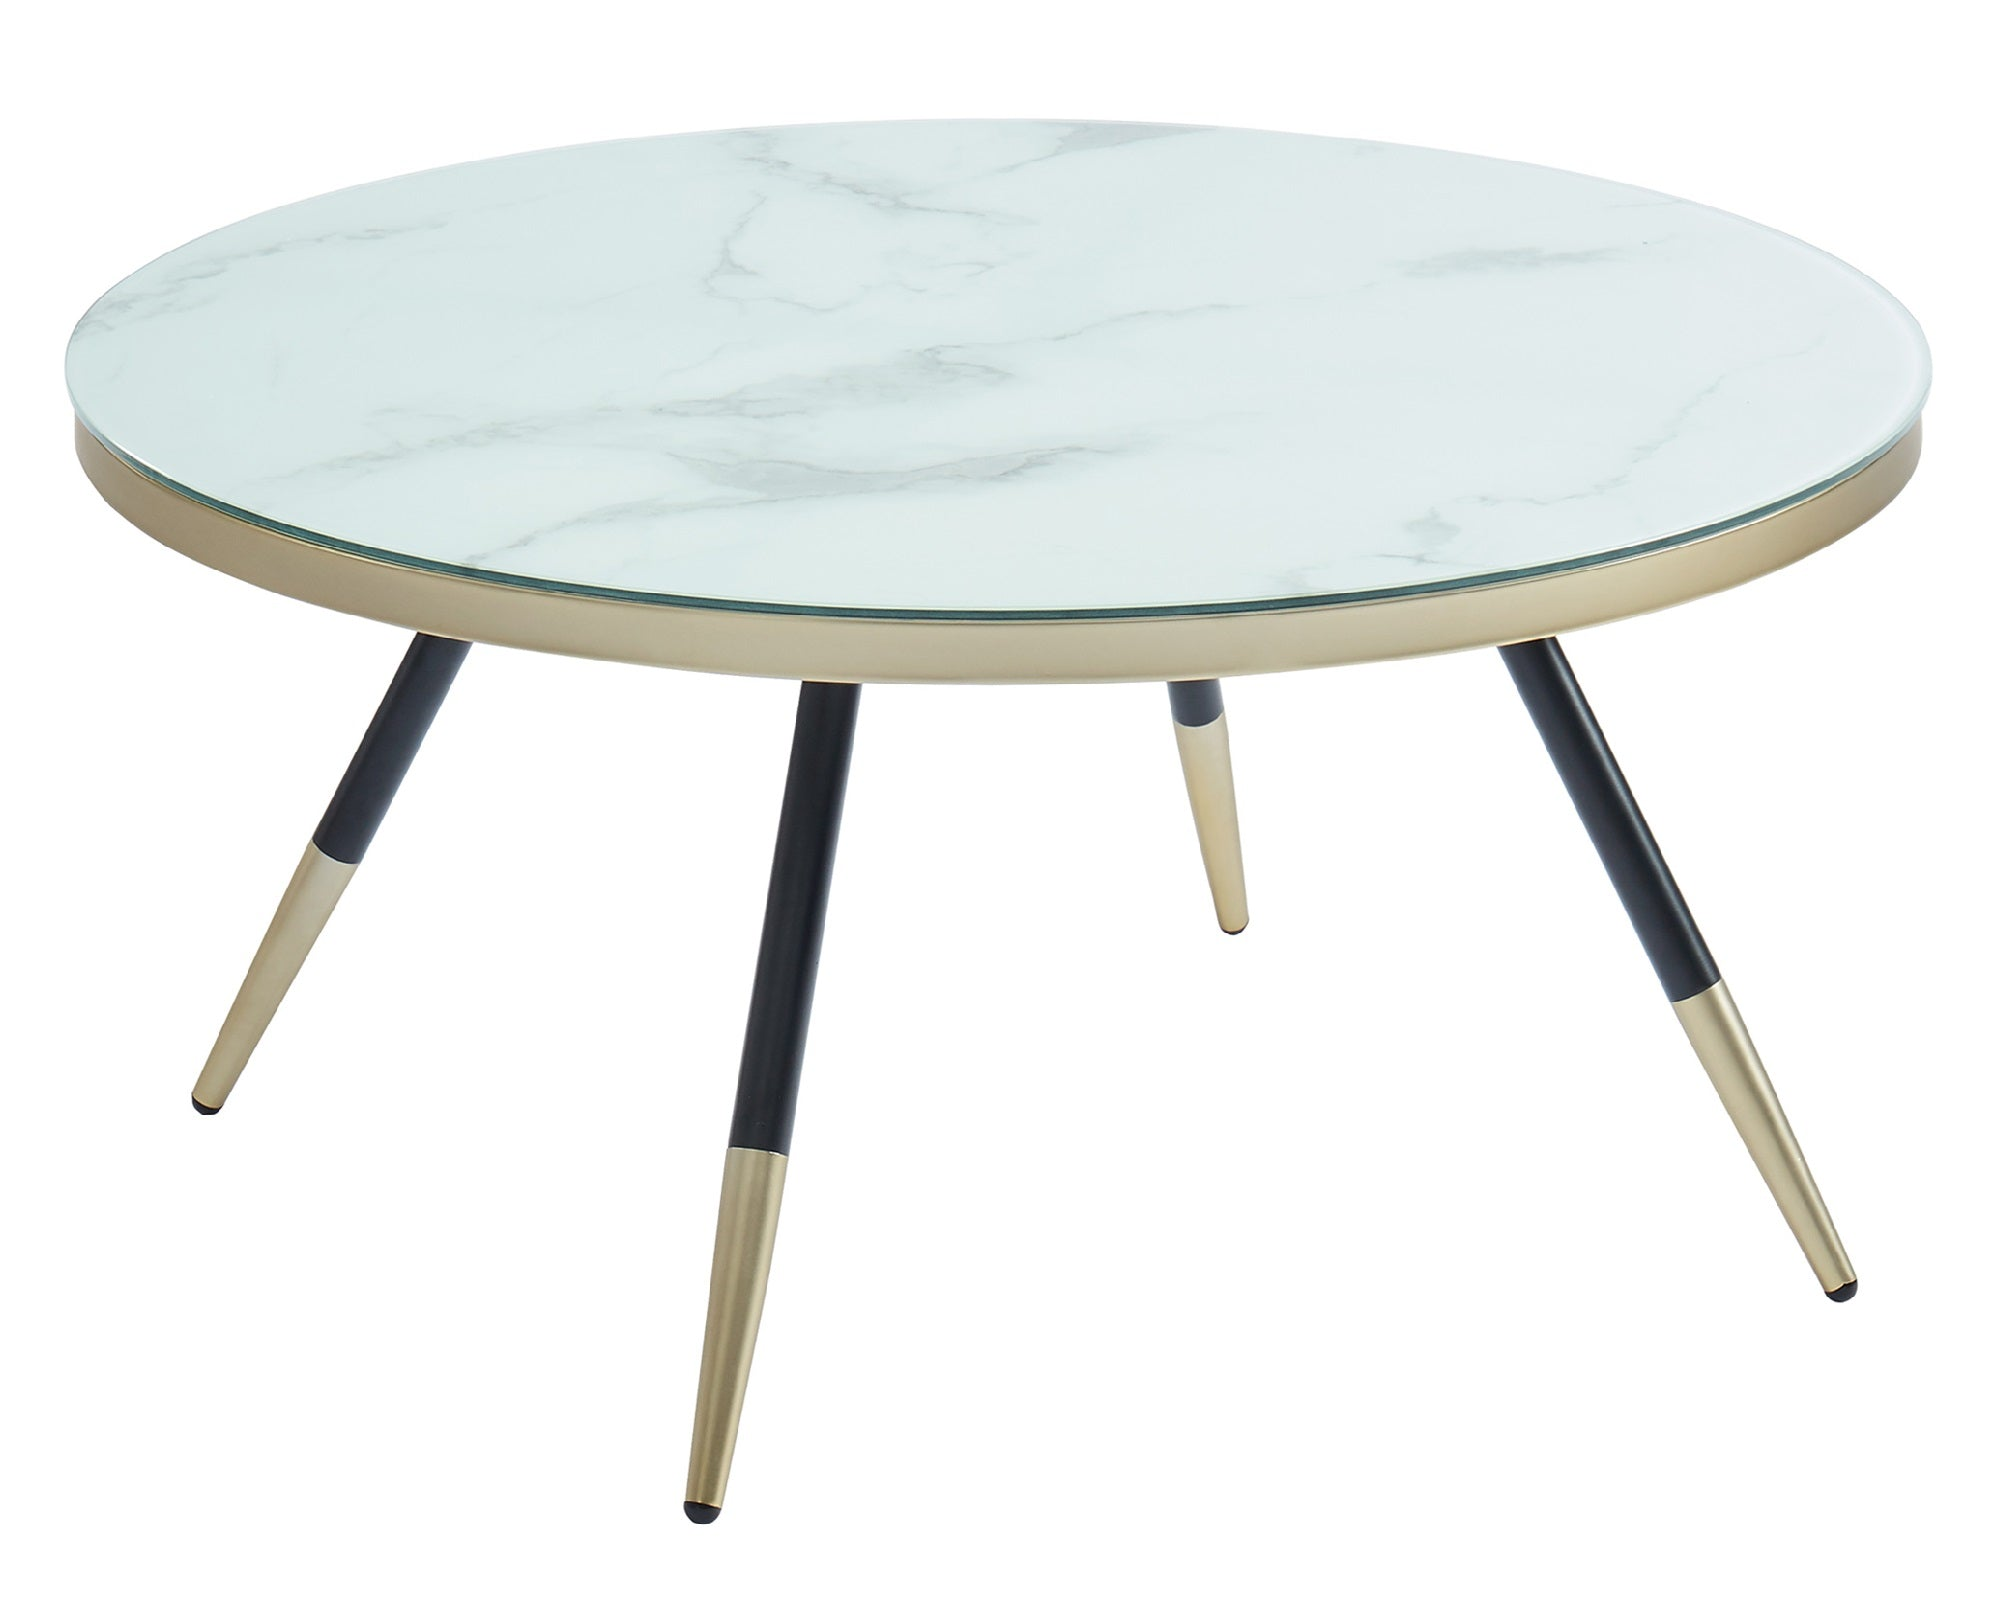 Cordelia Glass Top Coffee Table in White